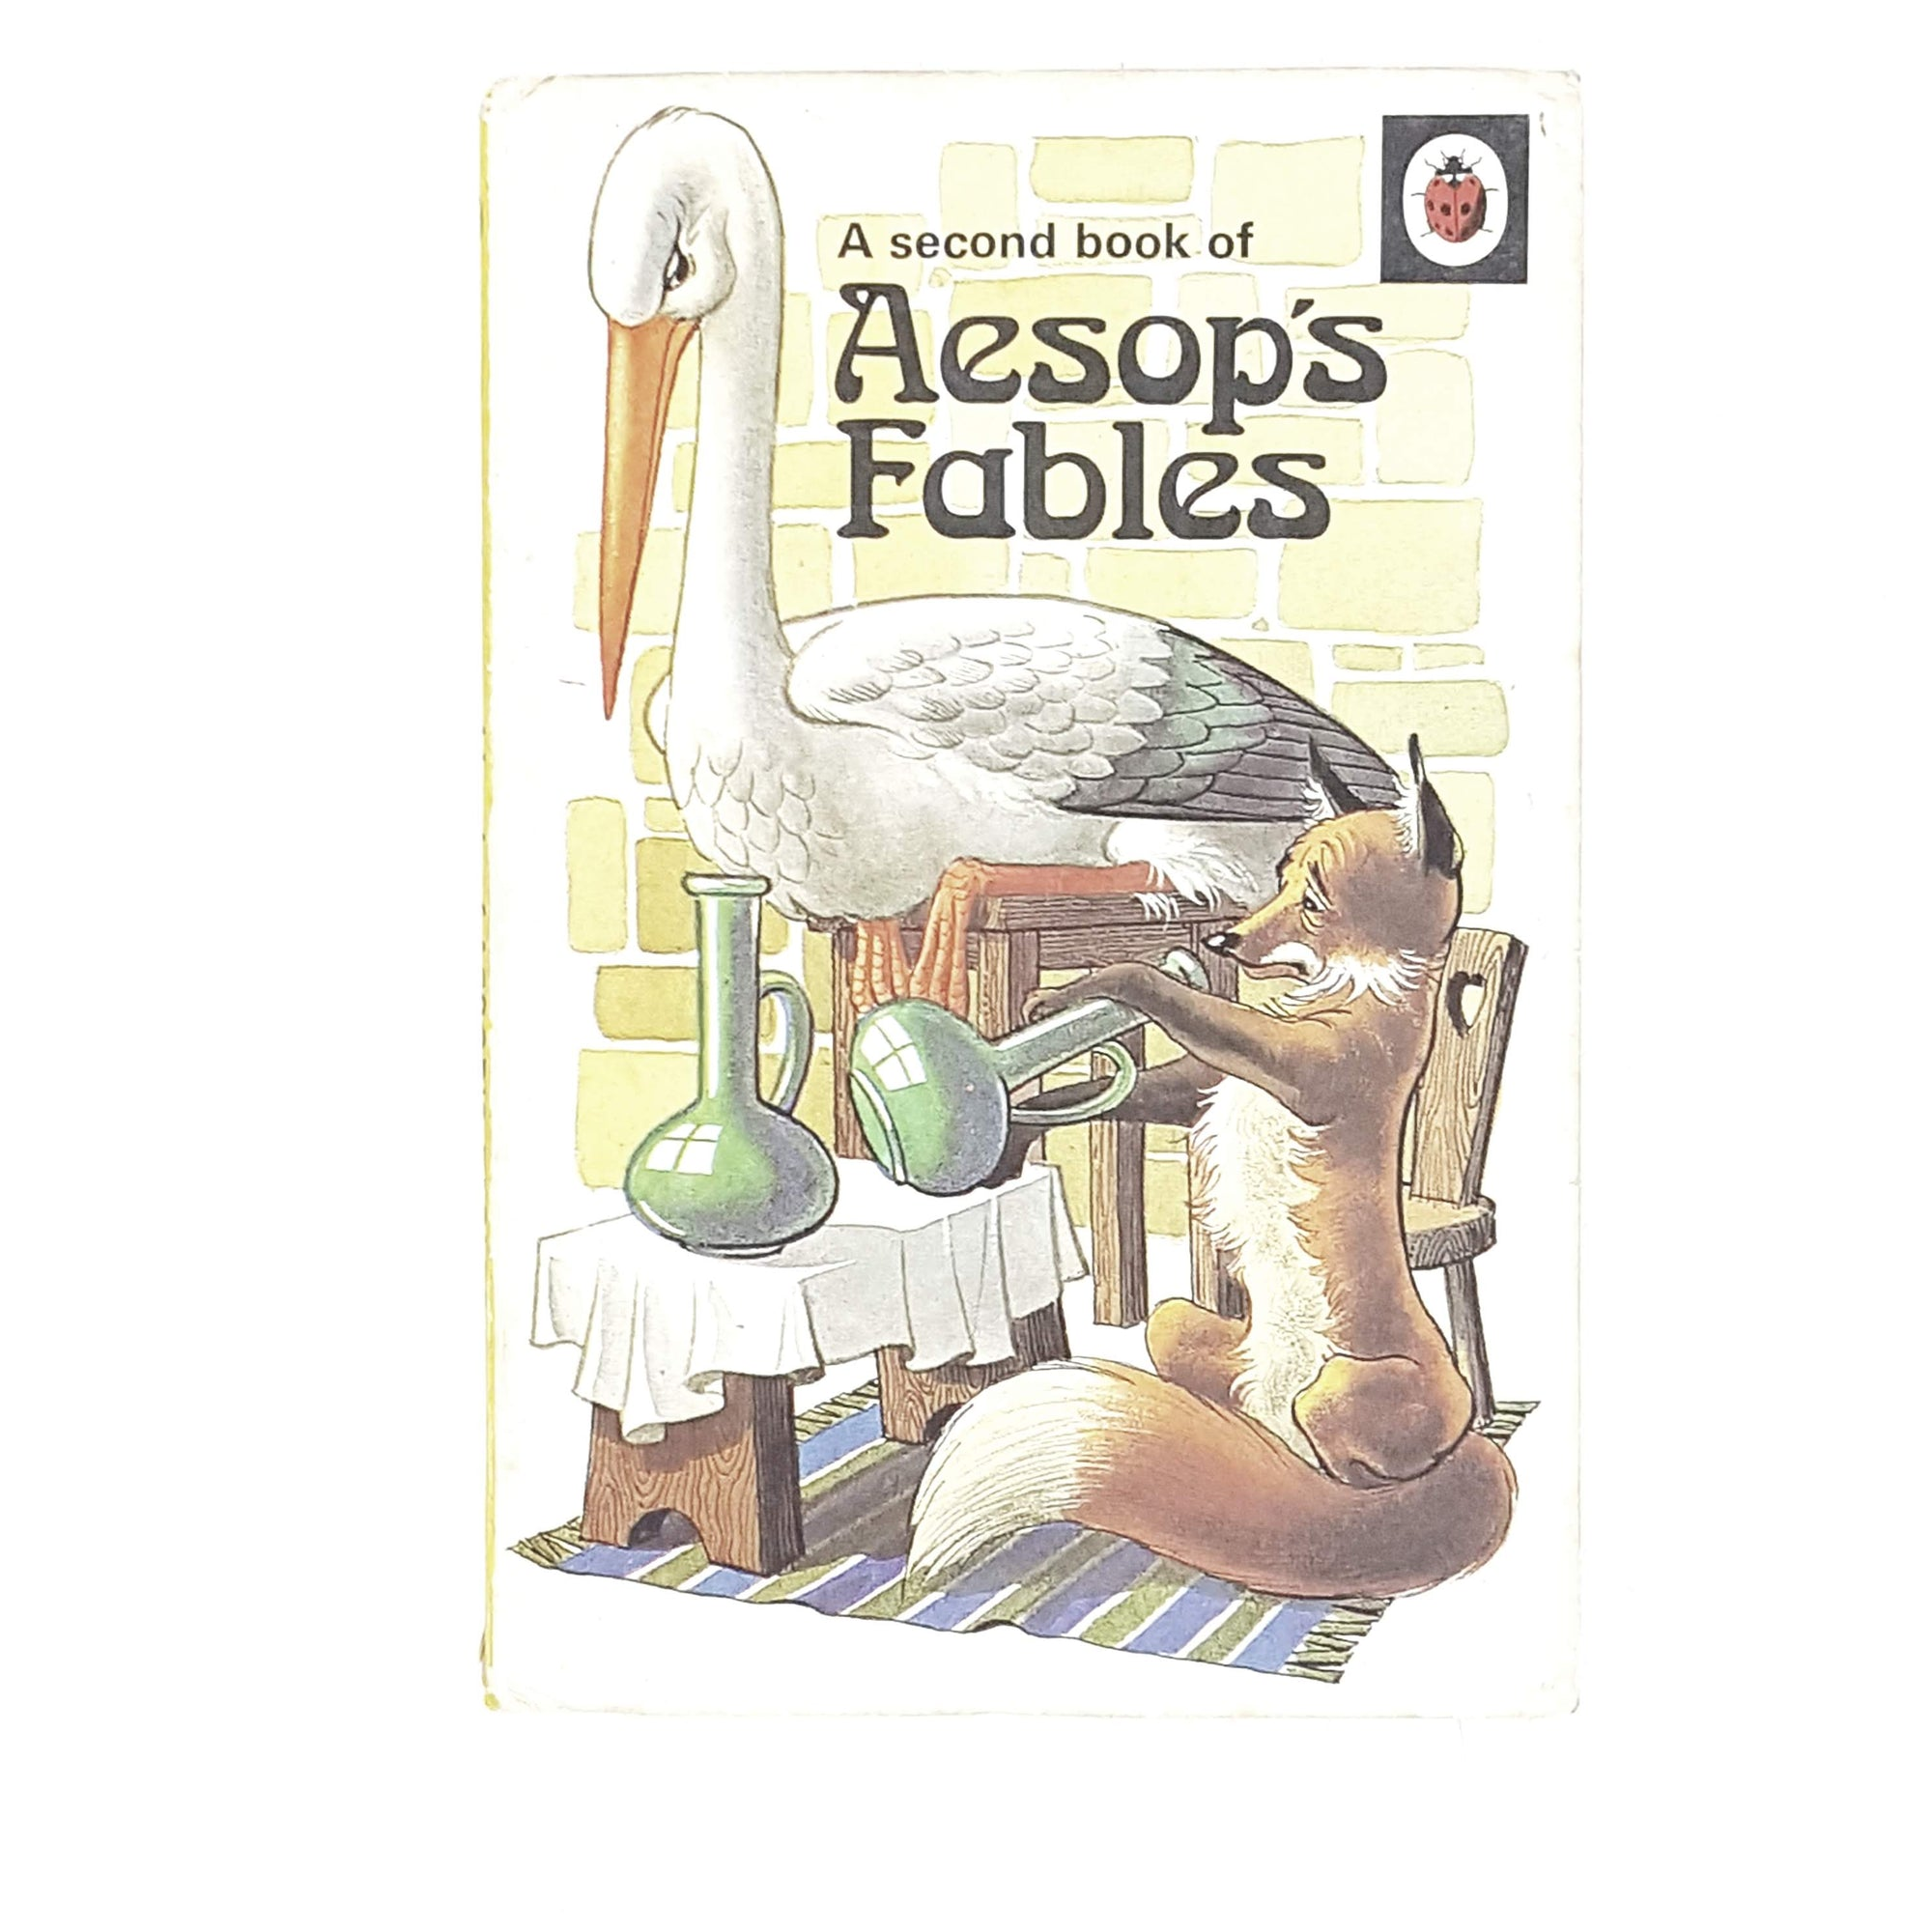 vintage-ladybird-a-second-book-of-aesops-fables-1974-kindergarten-books-country-house-library